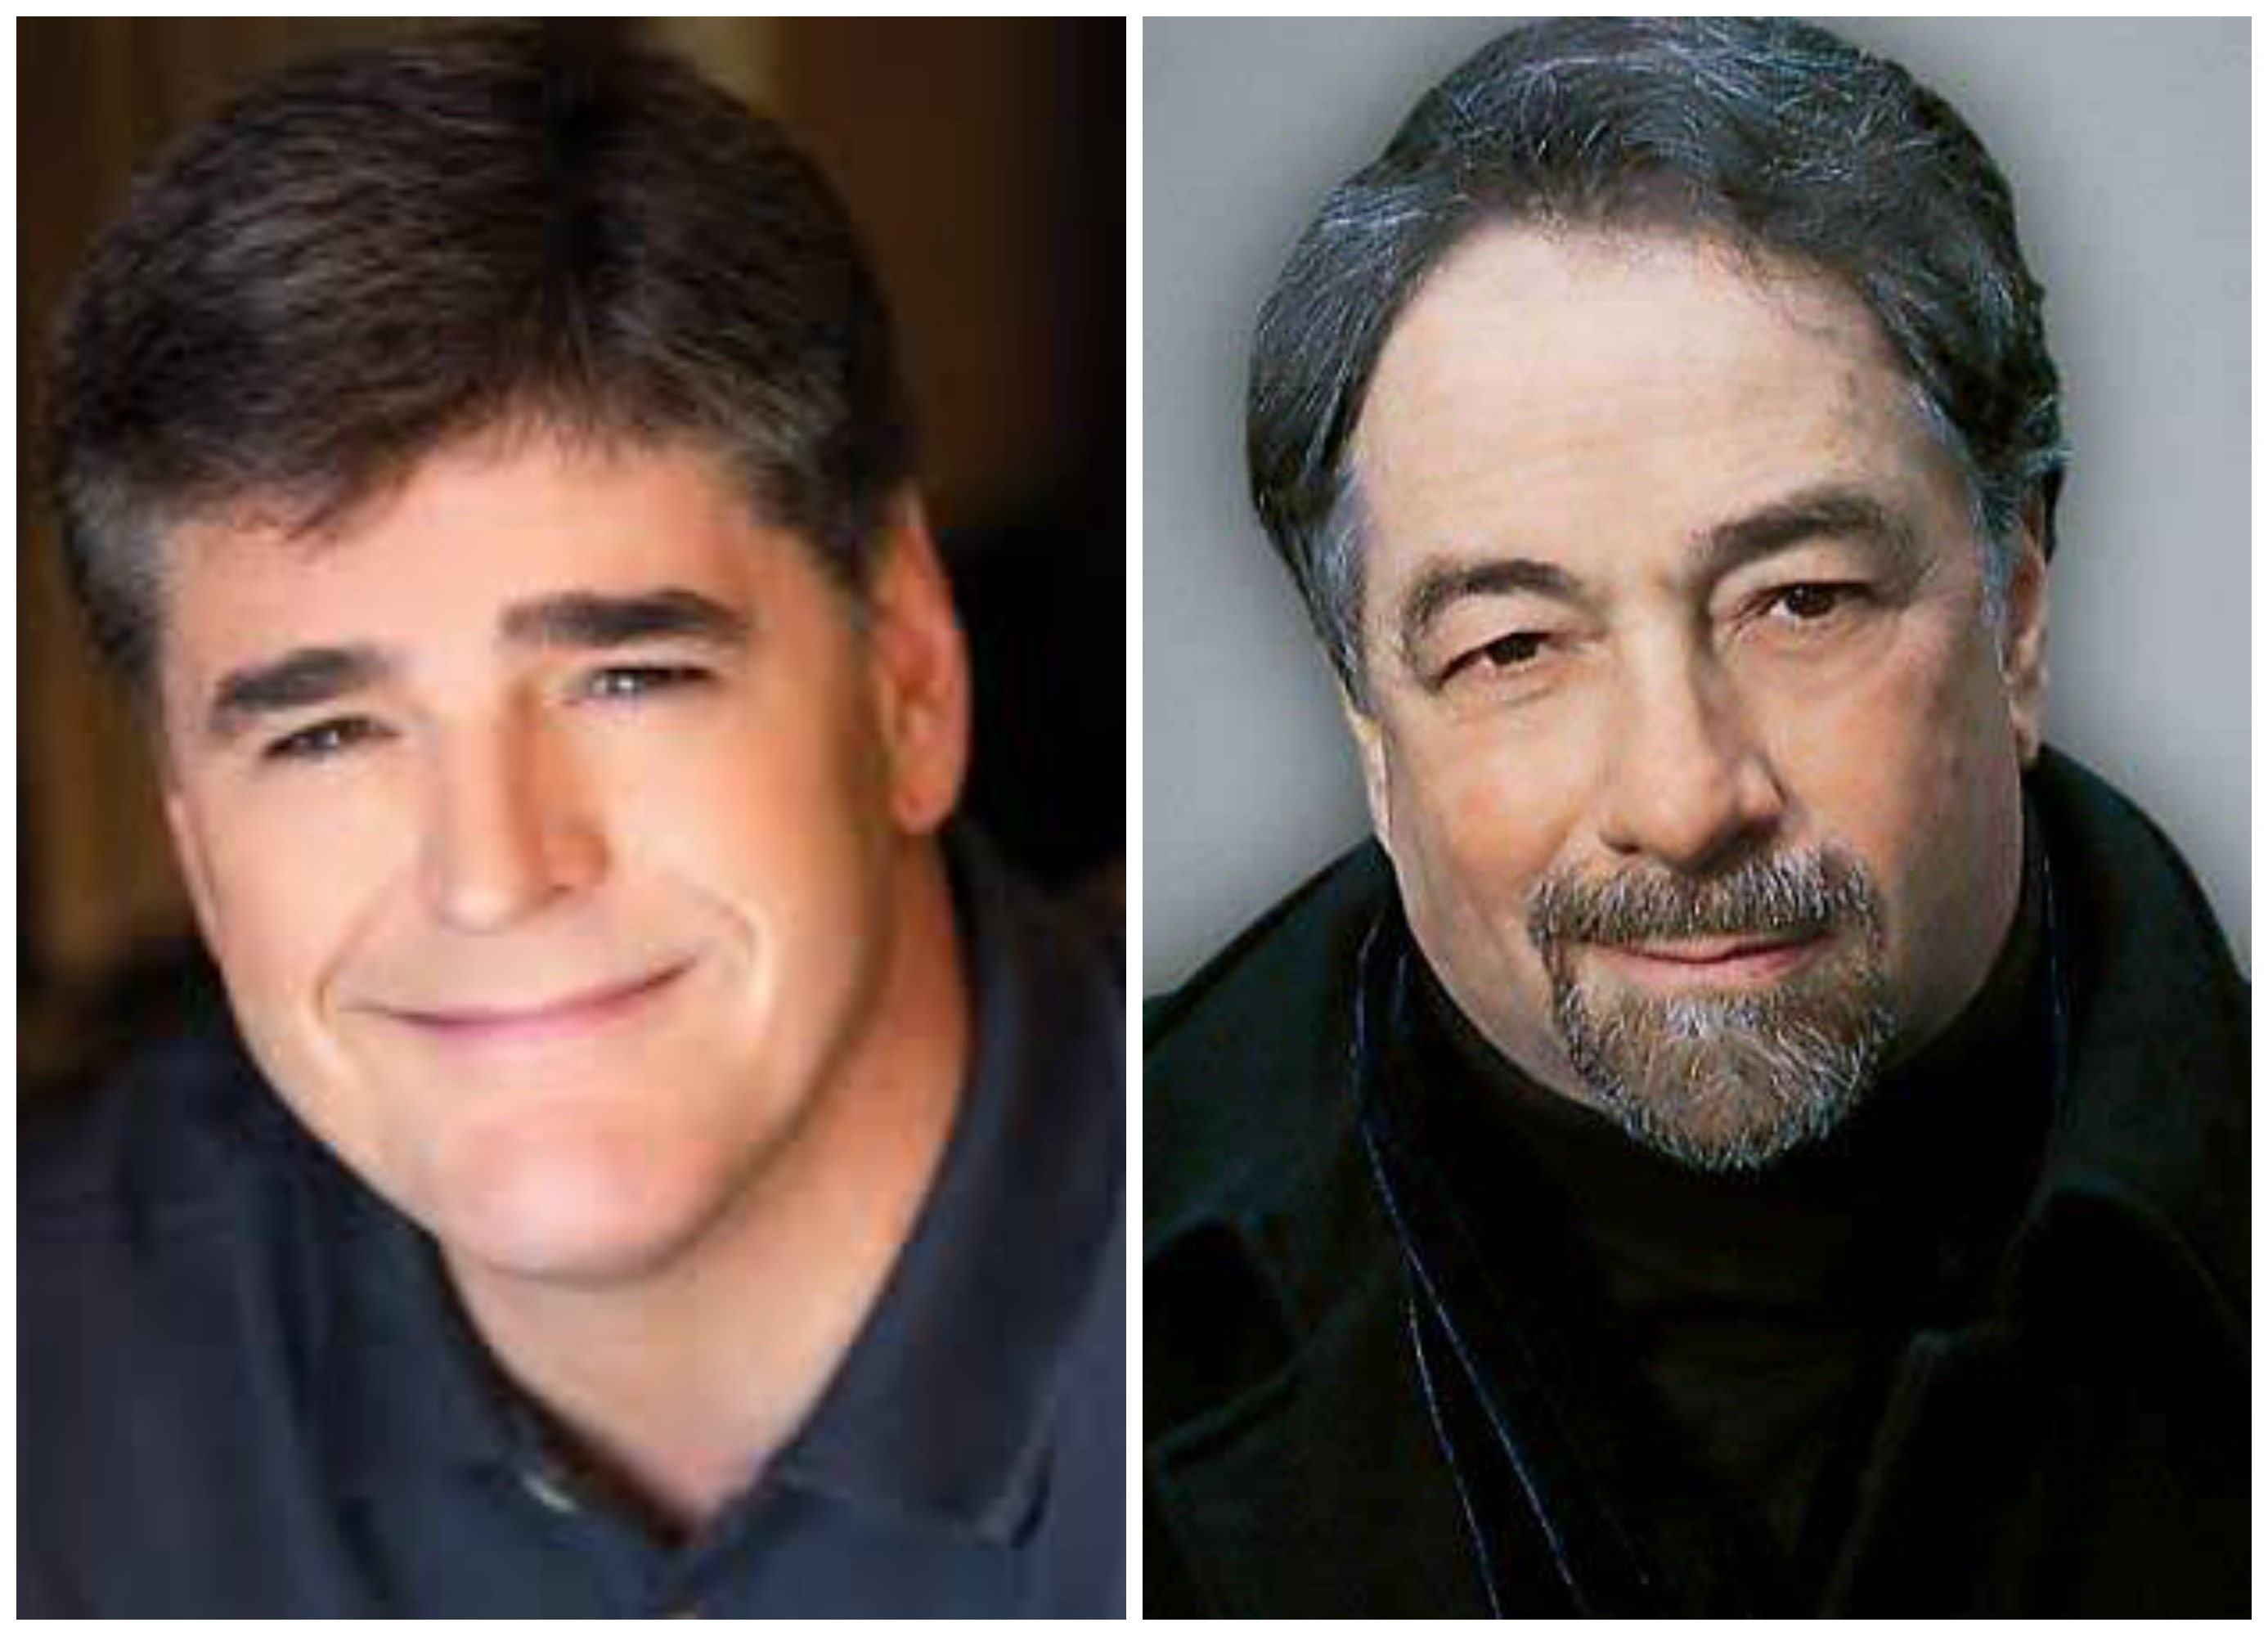 Politico pressures sean hannity to alter comments about michael savage